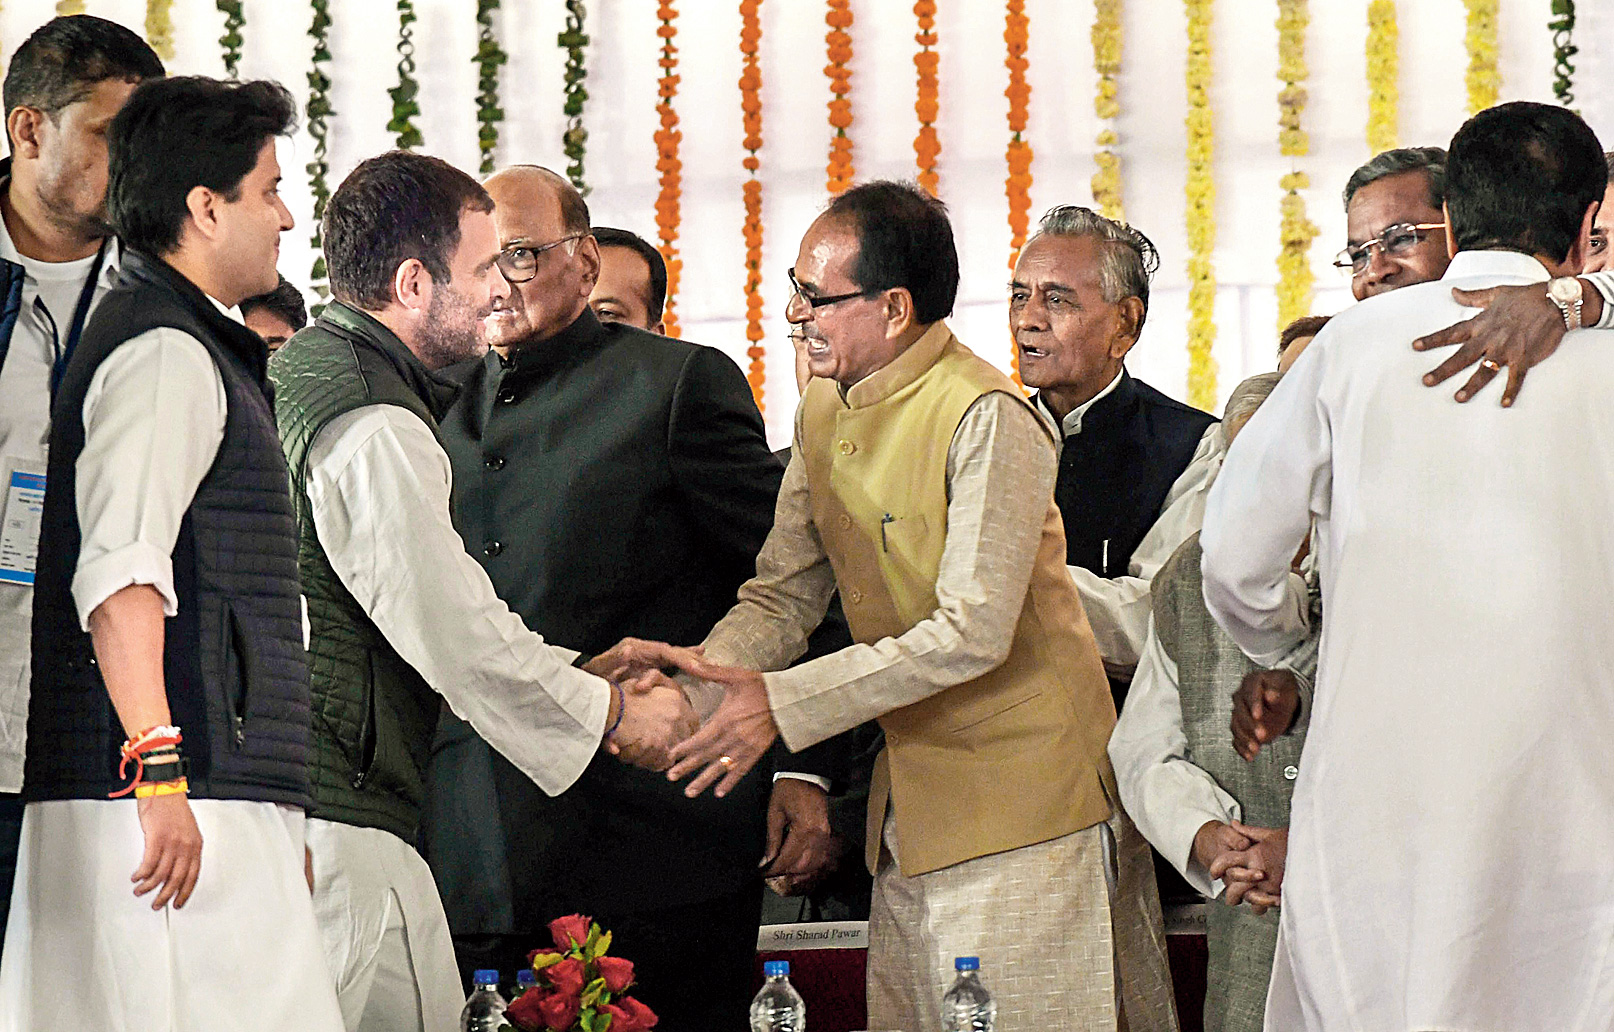 Congress president Rahul Gandhi shakes hands with BJP leader and former Madhya Pradesh chief minister Shivraj Singh Chouhan in Bhopal on Monday.